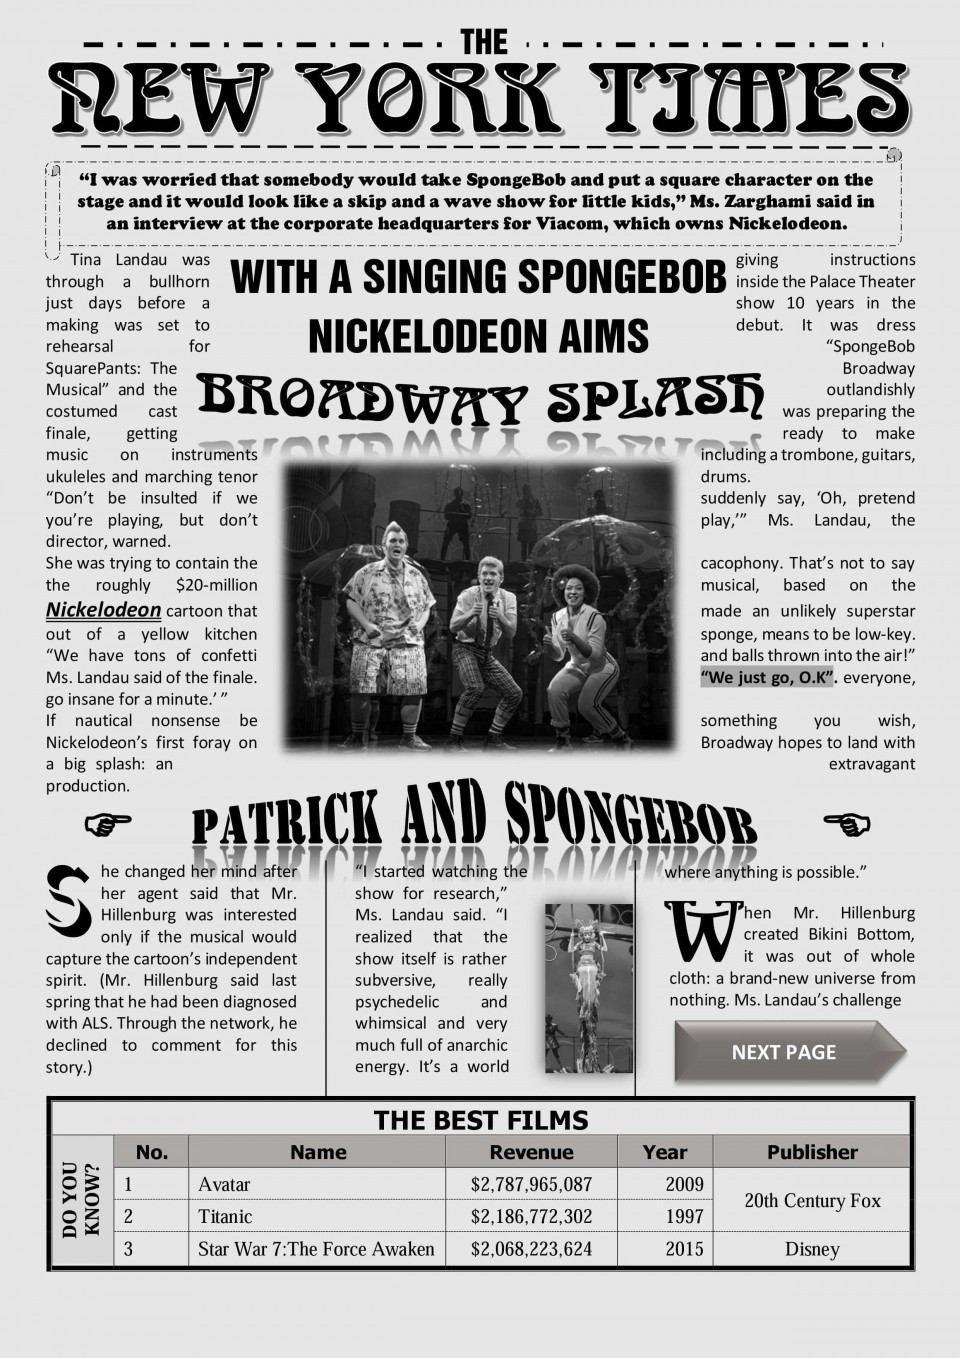 001 Dreaded Microsoft Word Newspaper Template Sample  Vintage Old Fashioned960